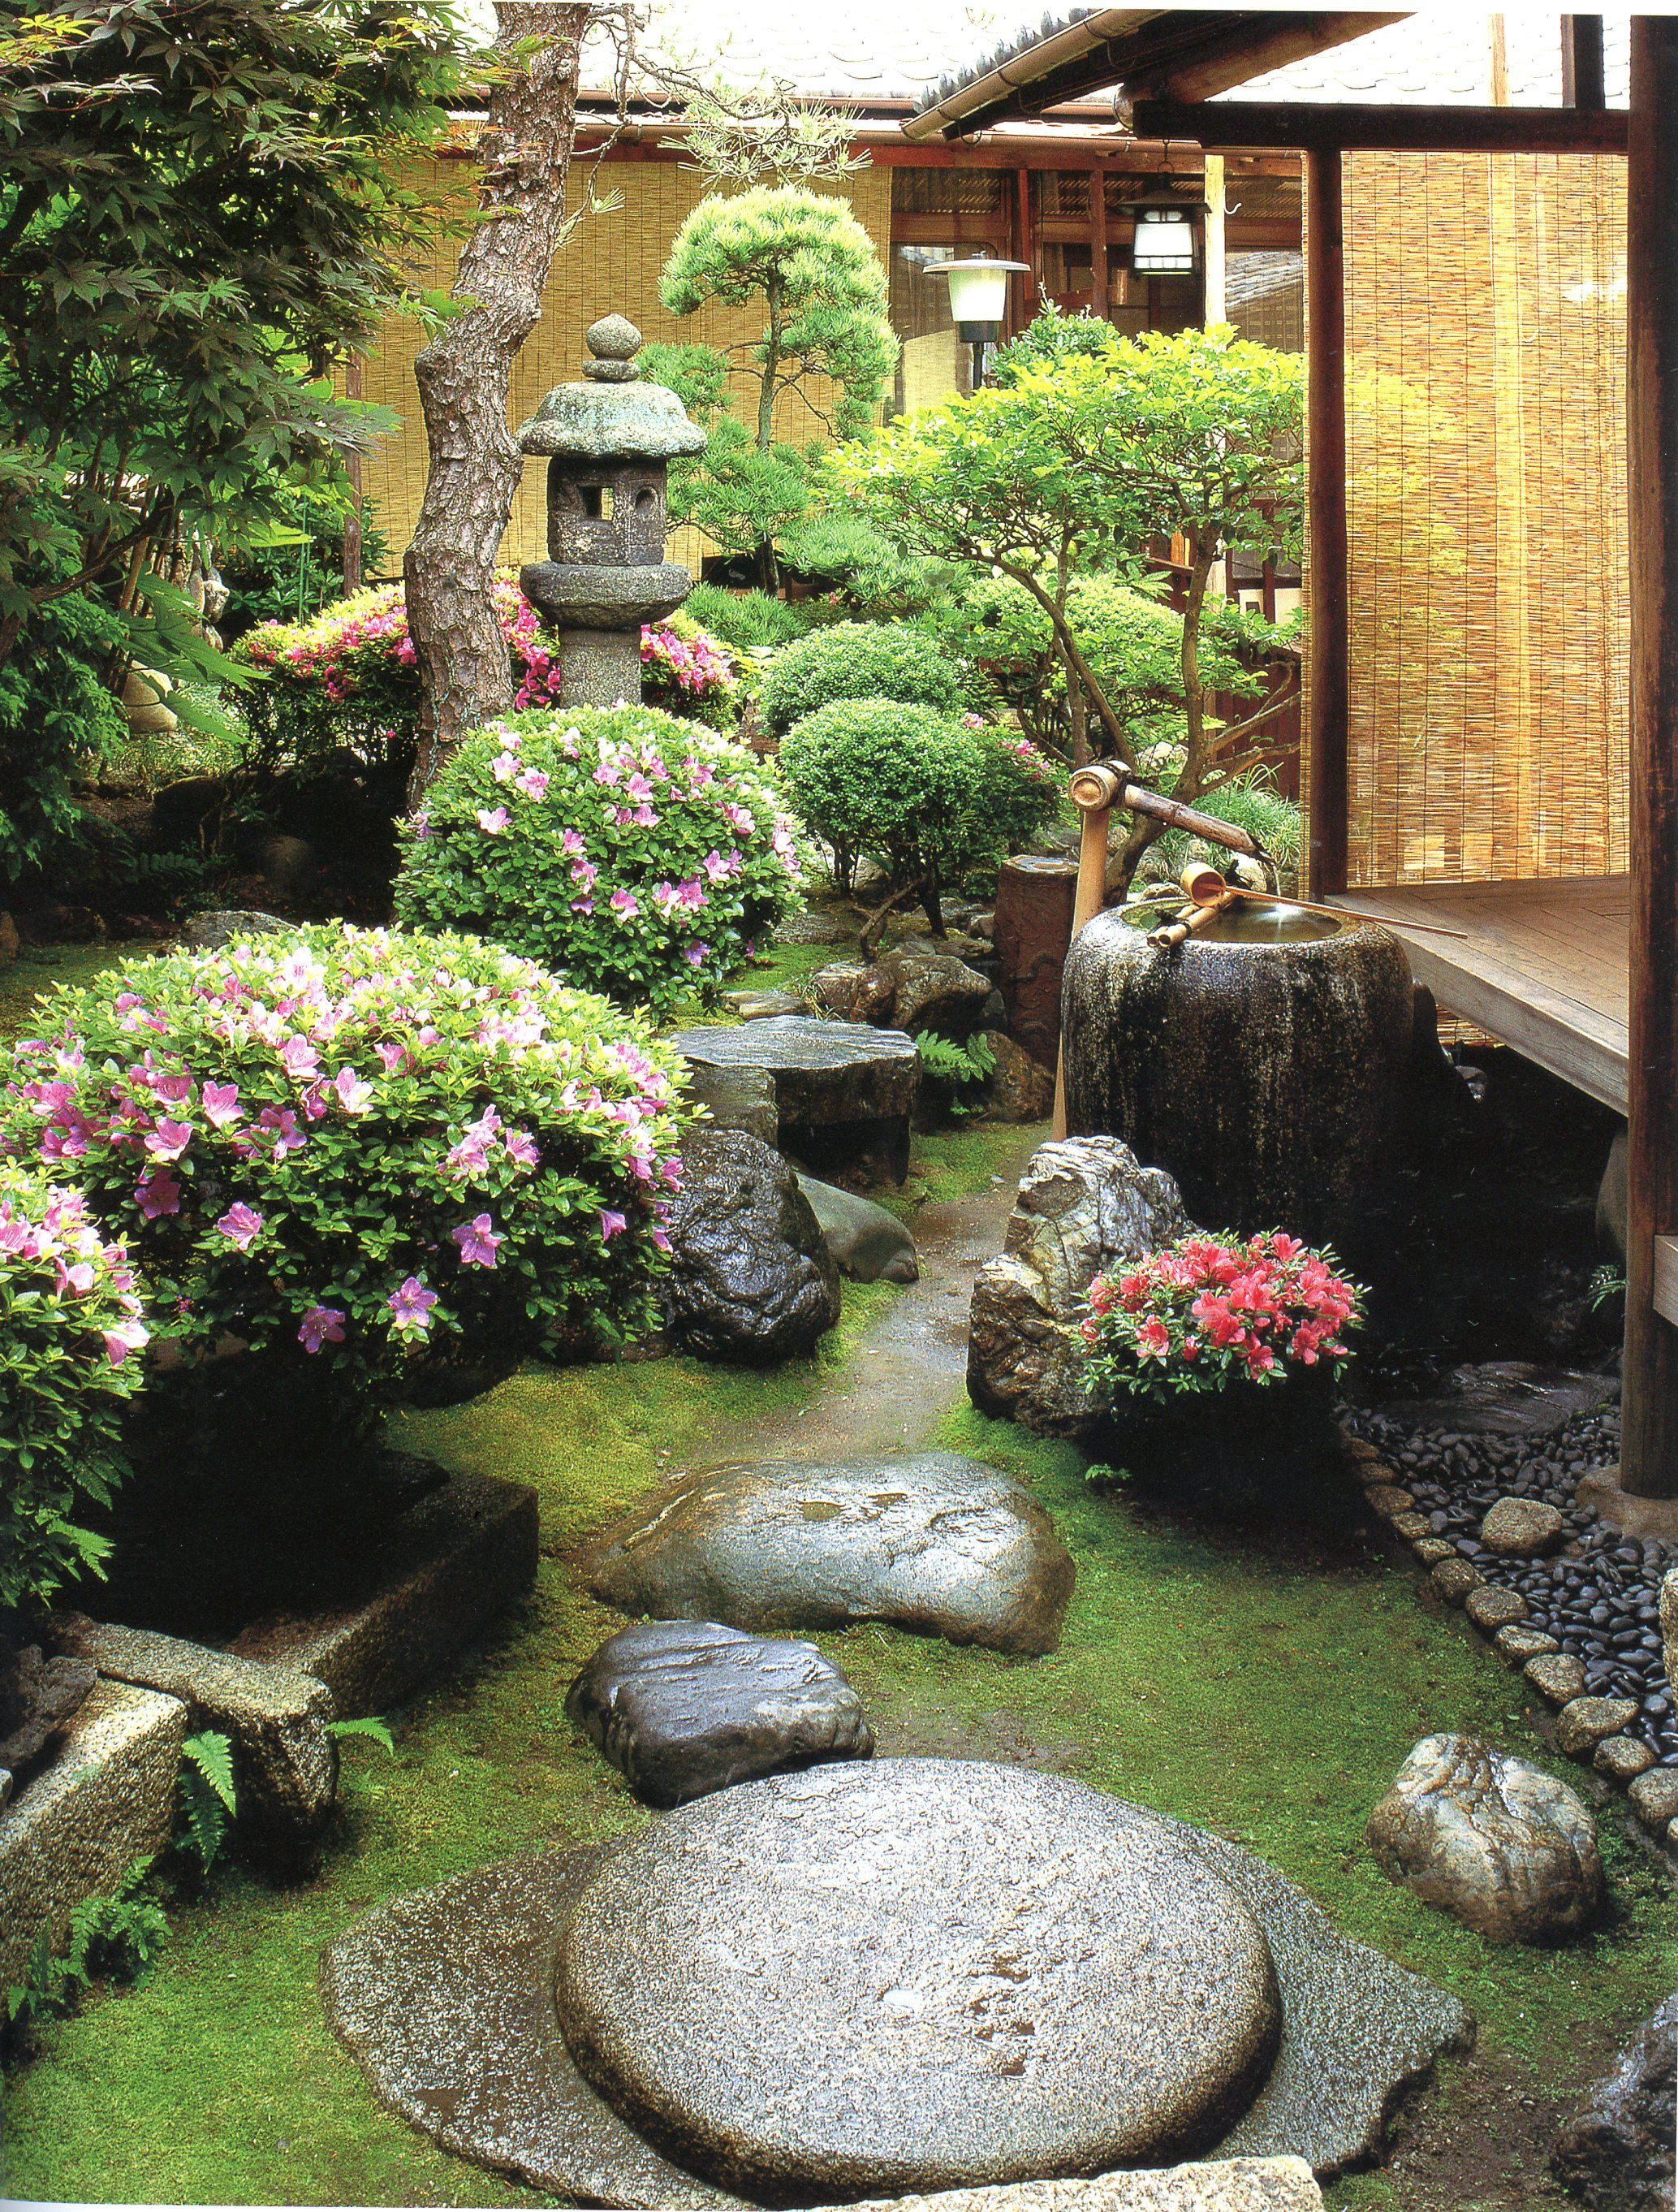 Yoshida Residence: Landscapes For Small Spaces: Japanese Courtyard Gardens,  By Katsuhiko Mizuno